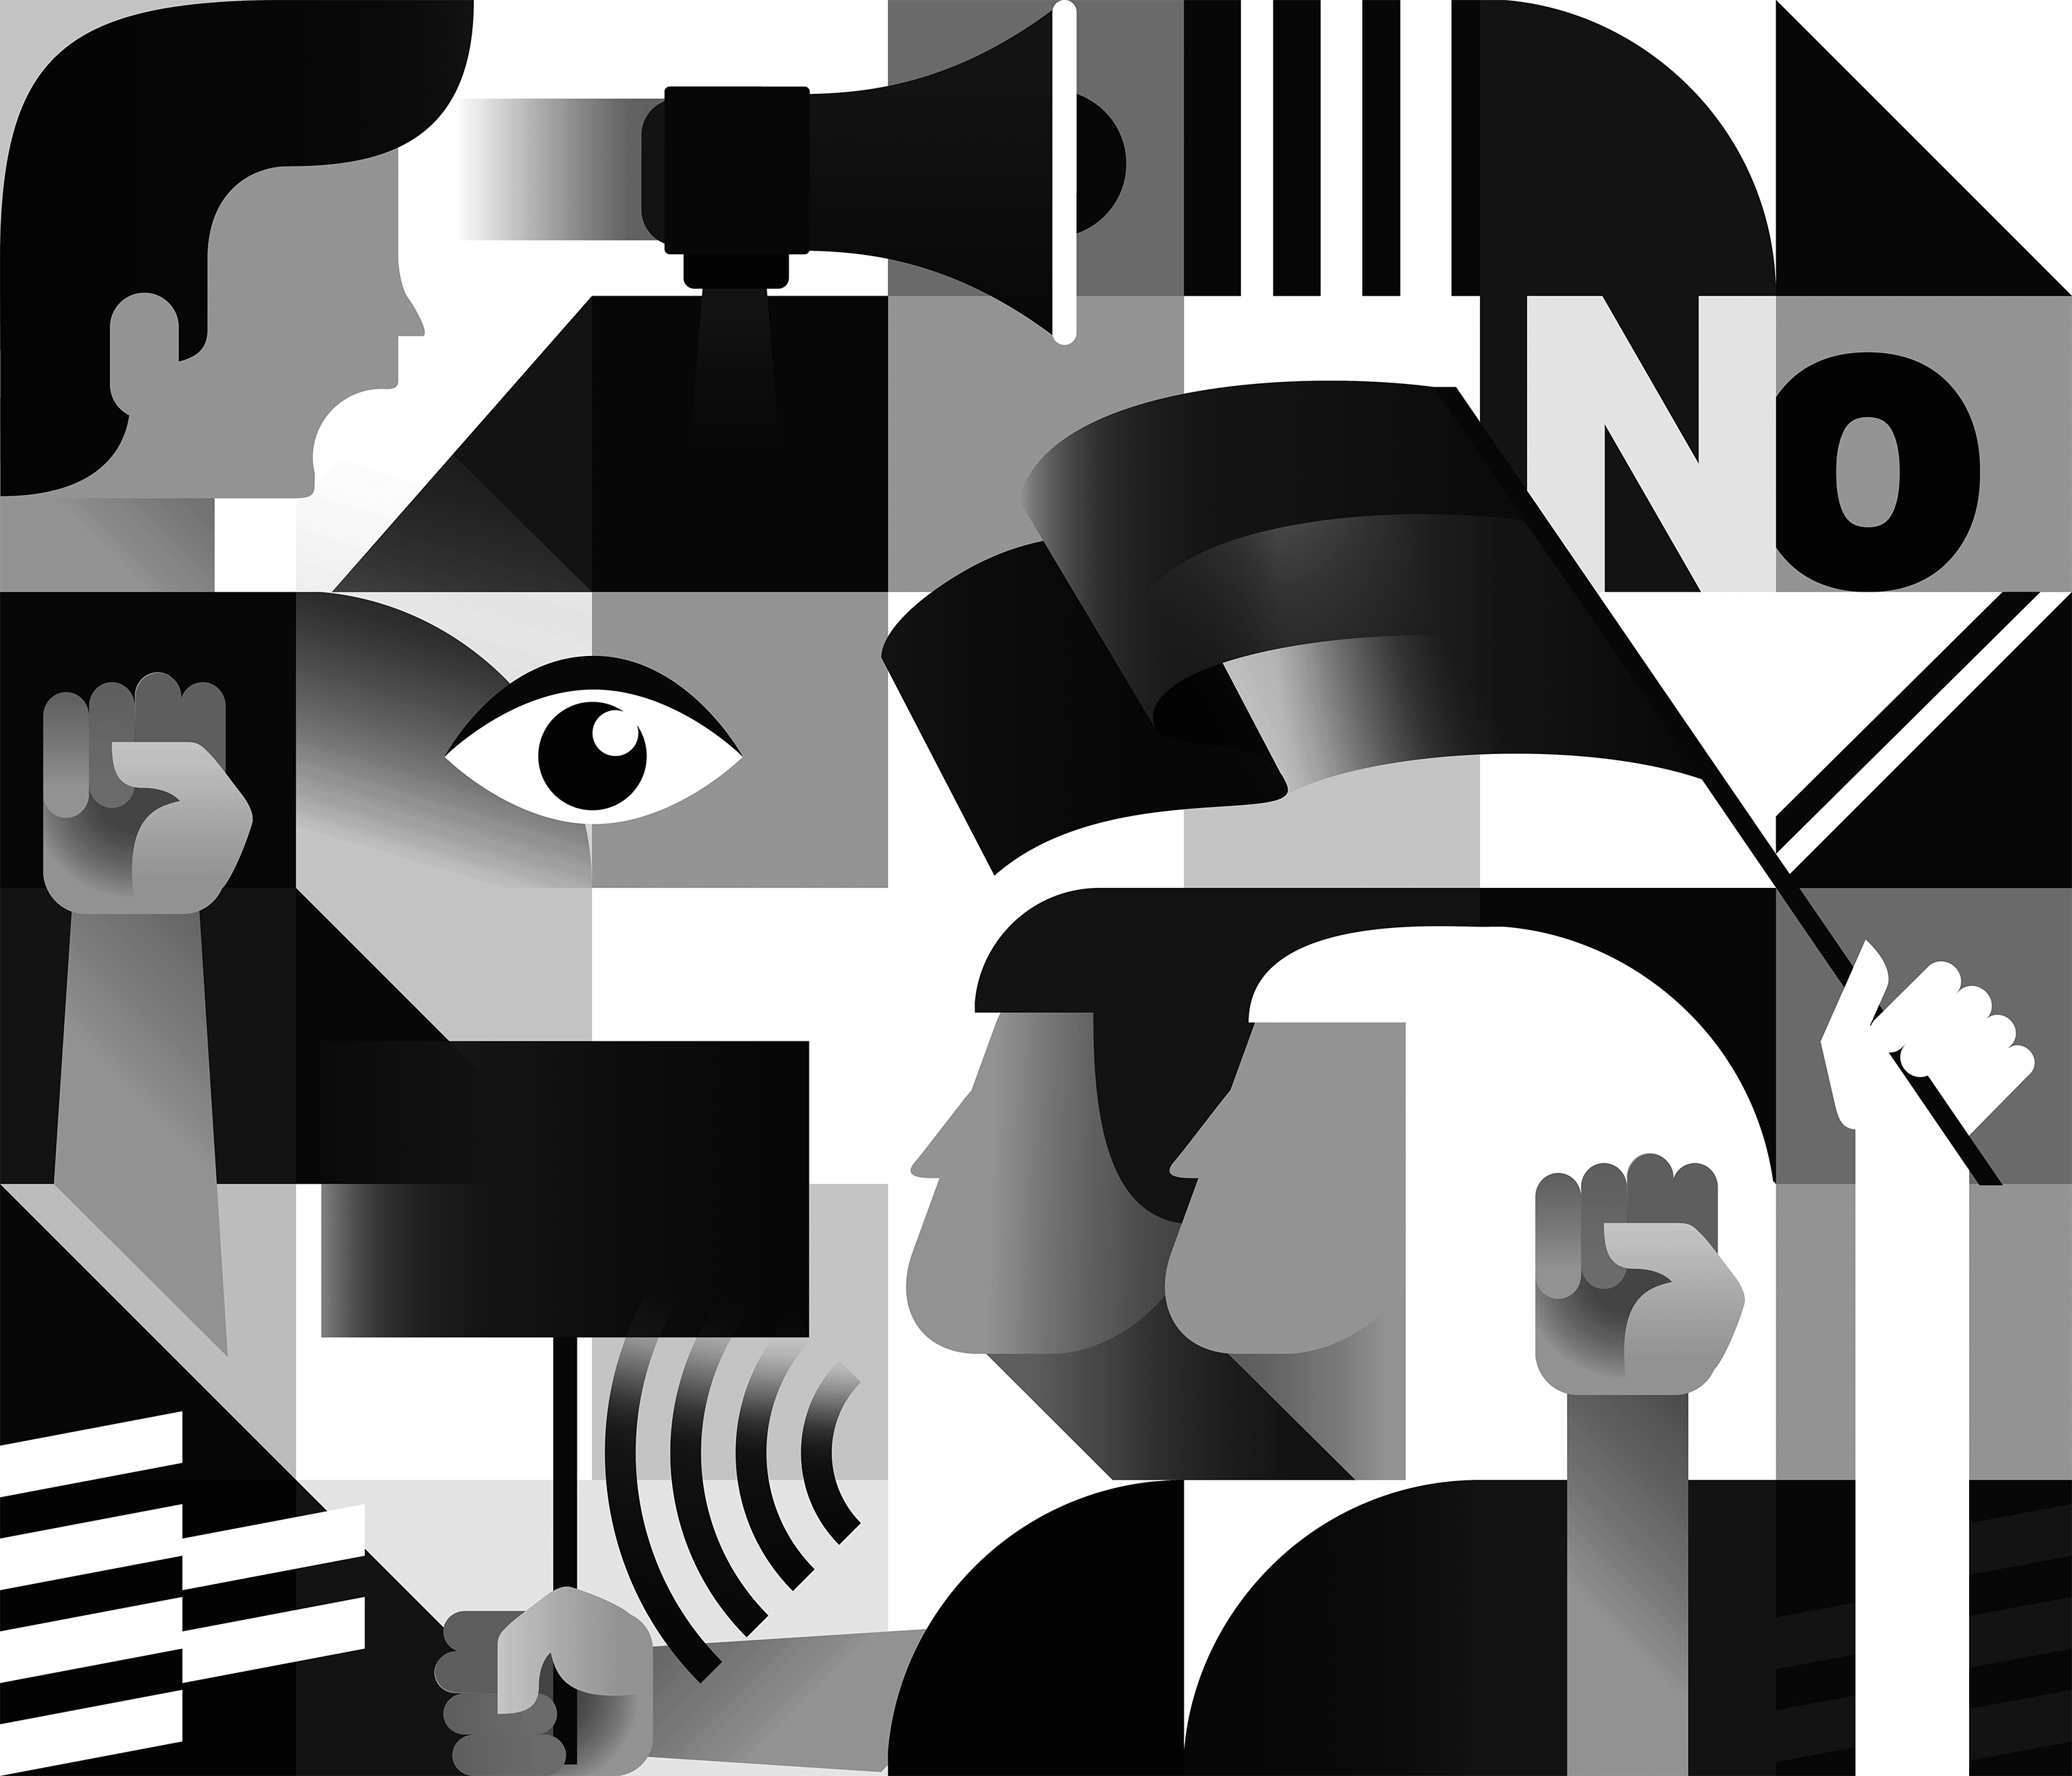 A black and white collage that includes shapes and other symbols.